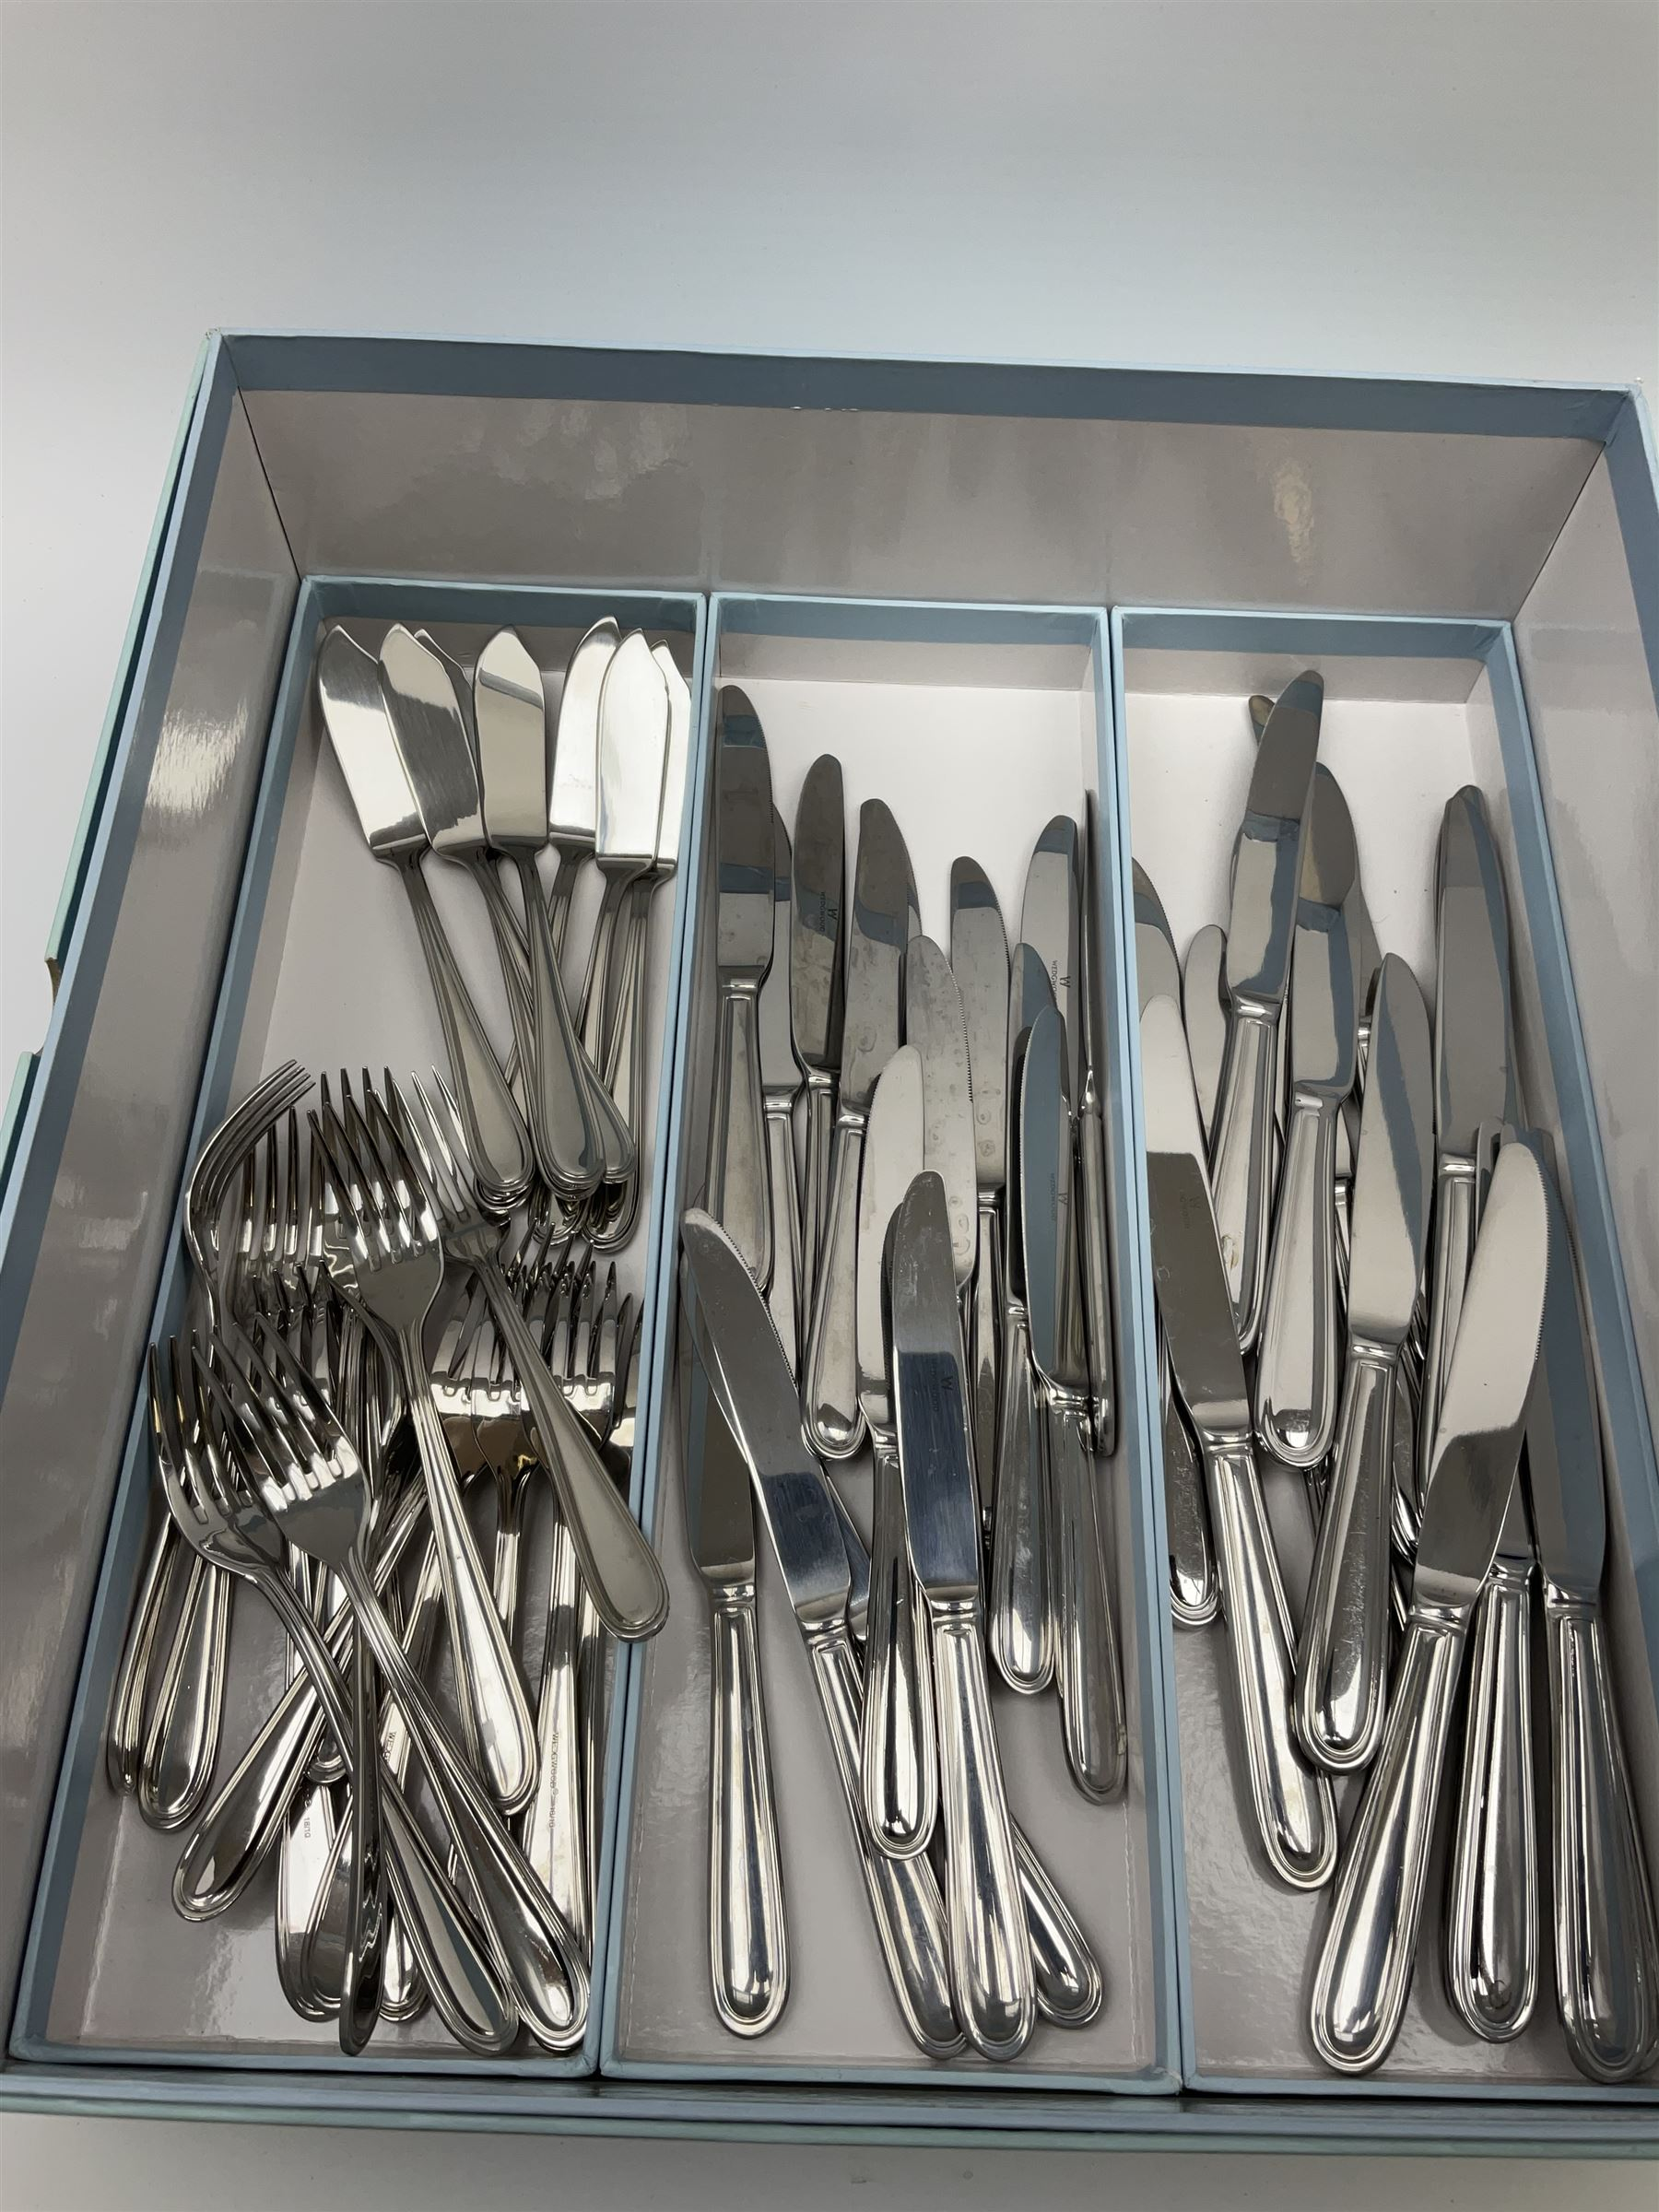 Wedgwood cutlery service - Image 2 of 5